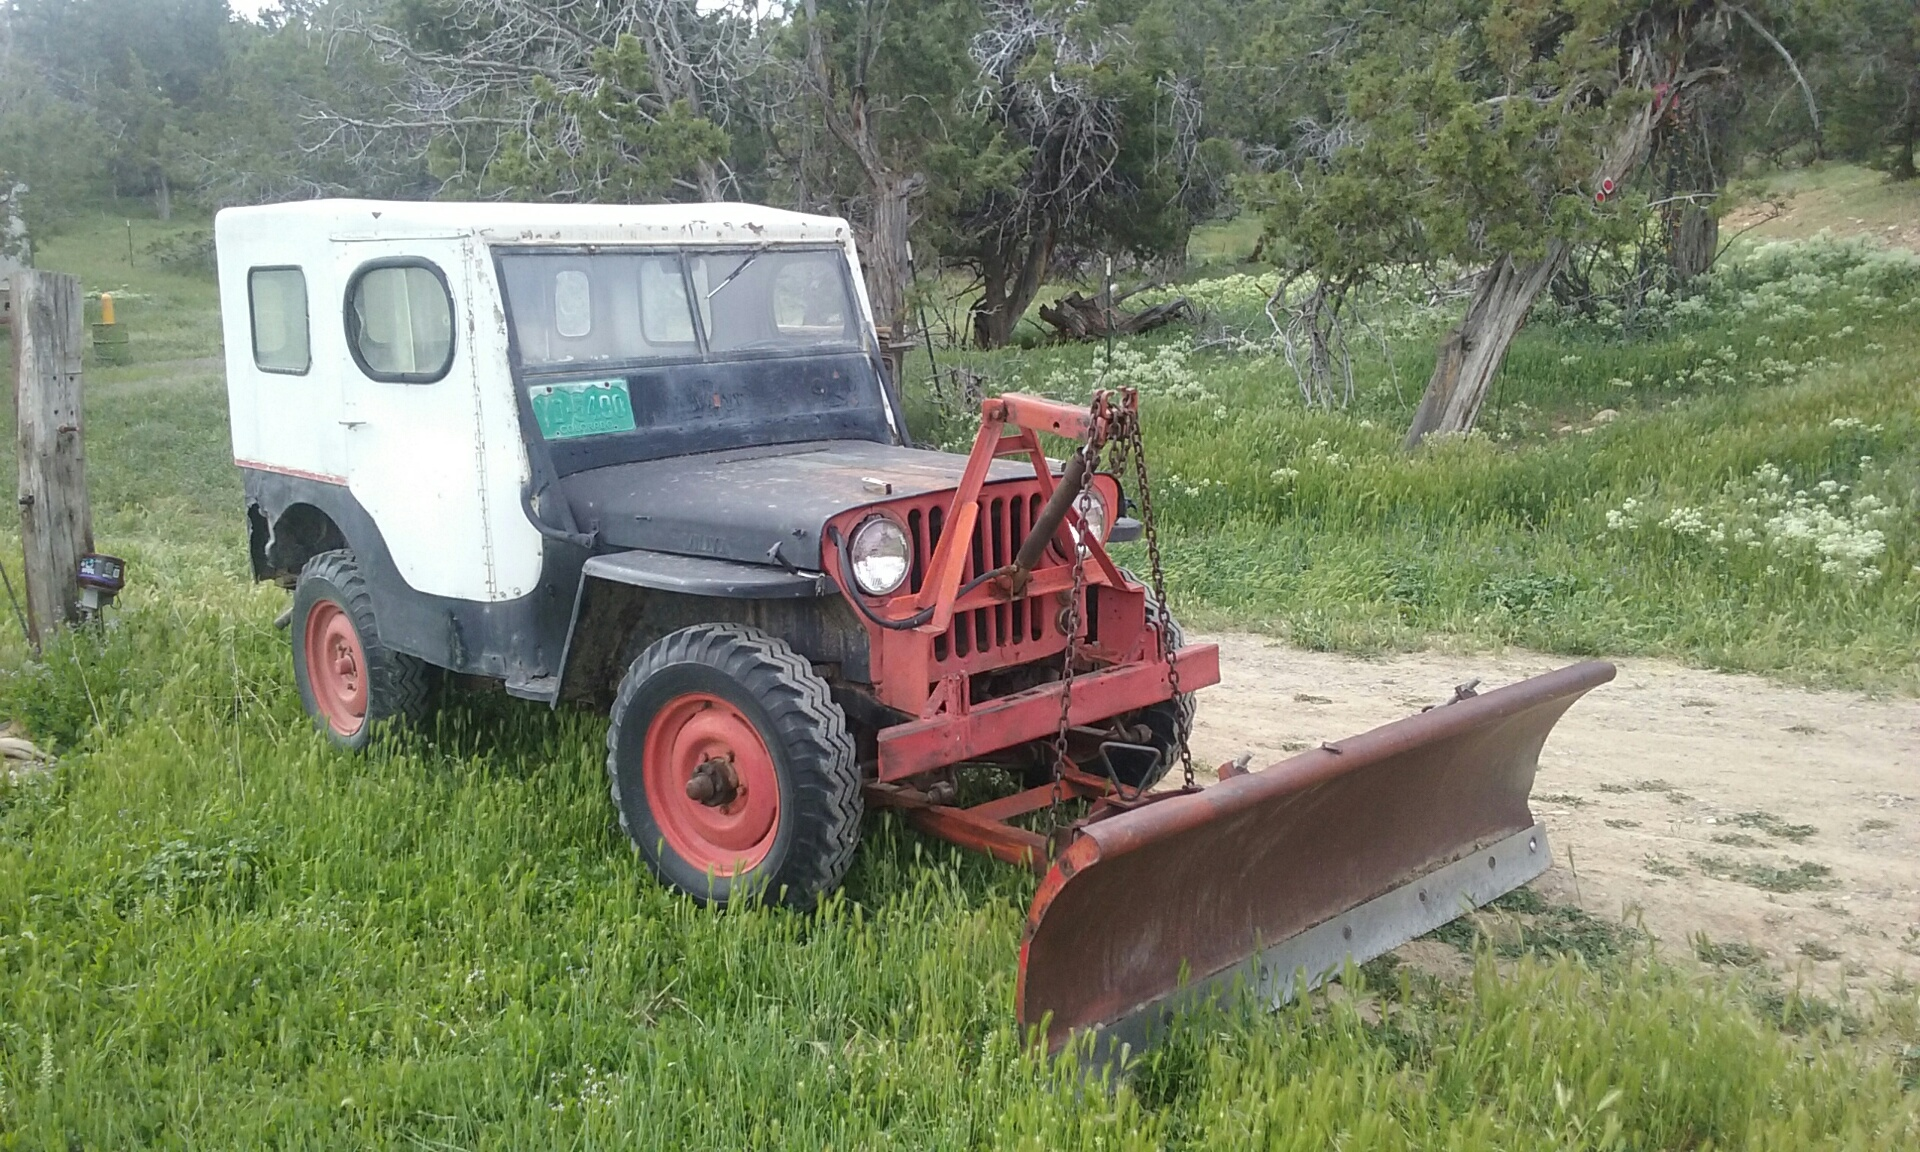 1948 Willys for sale $2000 or make offer The CJ2A Page Forums